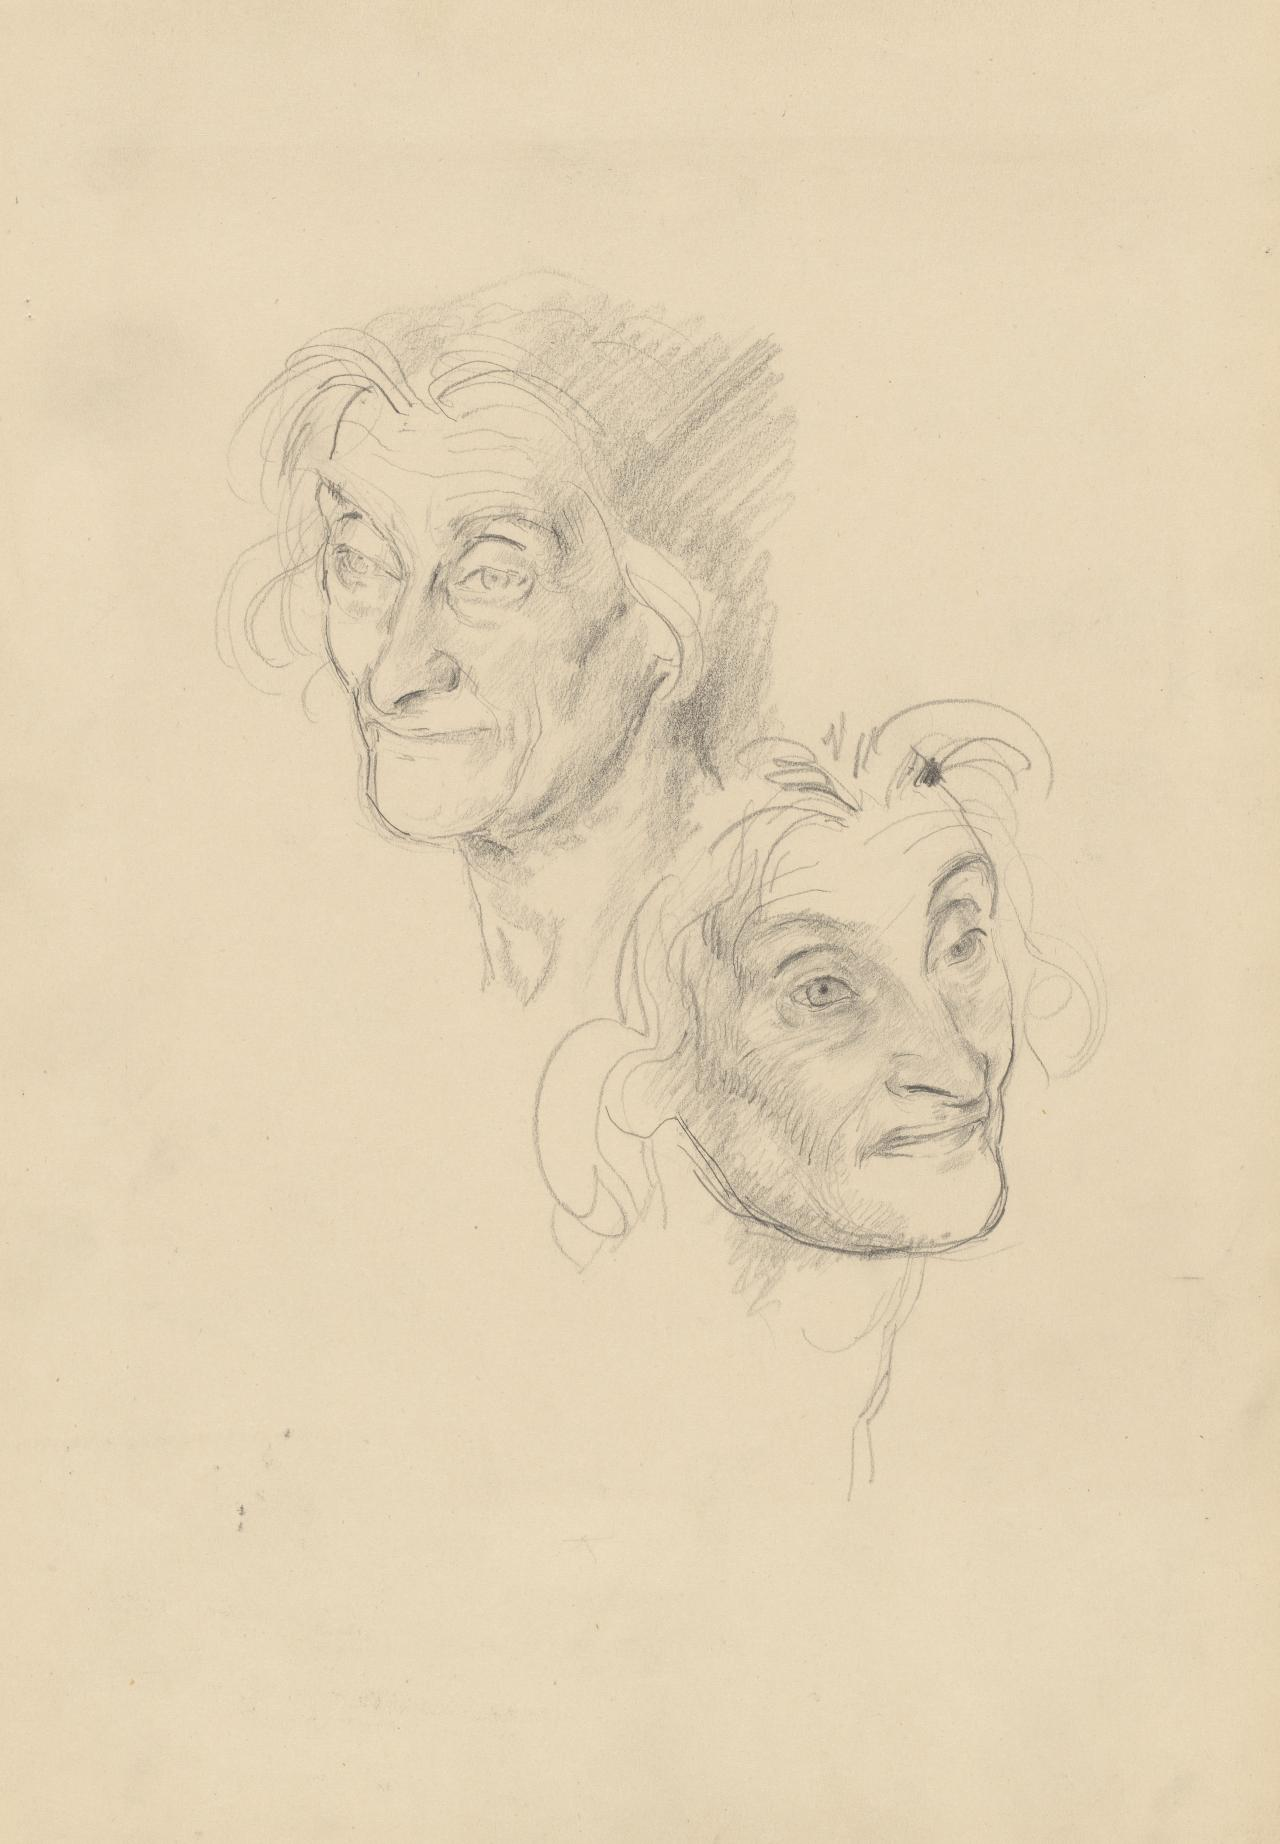 Two studies of an old woman's head